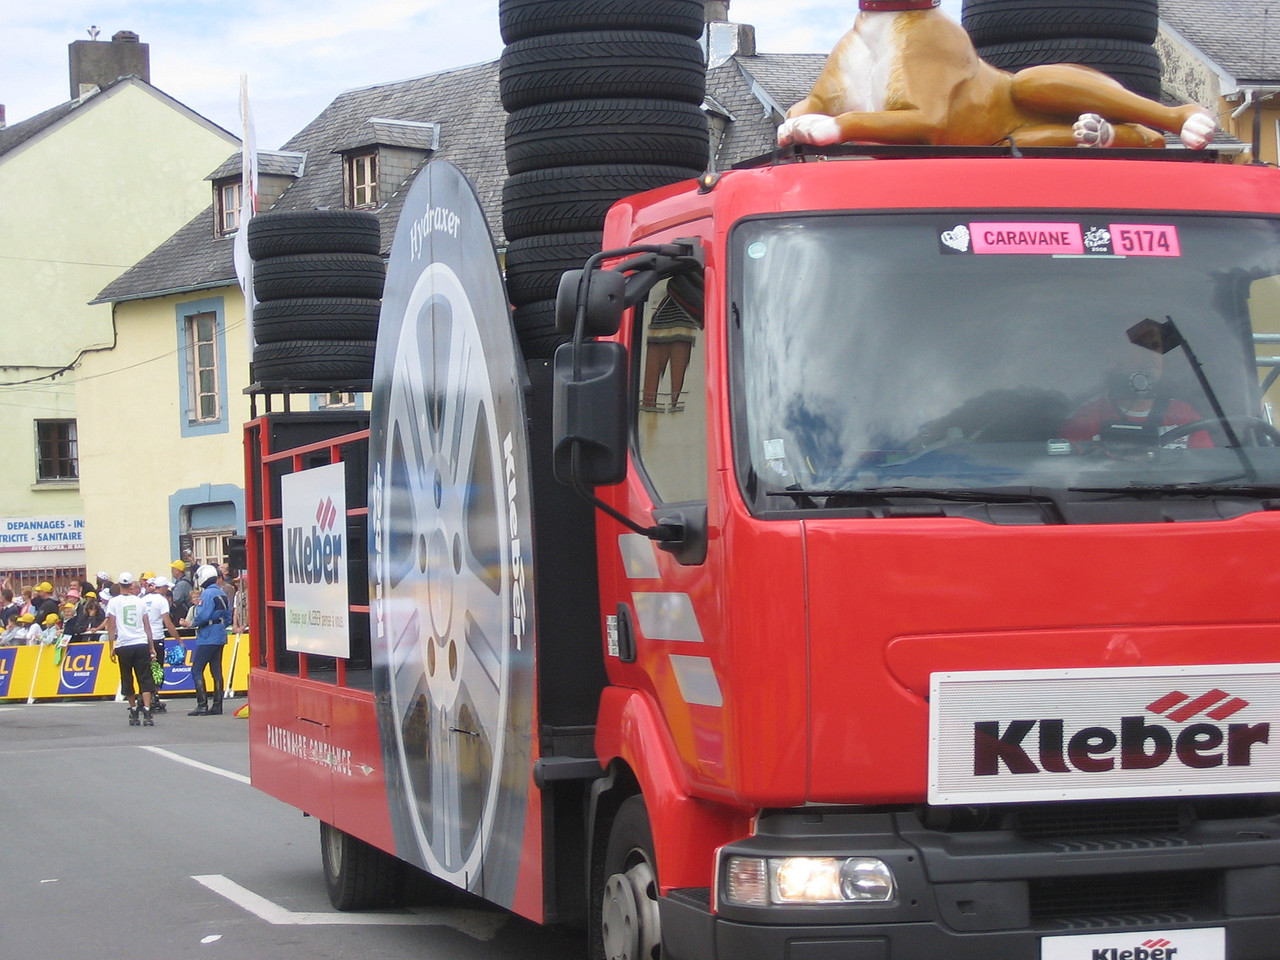 This truck throws inflatable tires at people in the crowd.